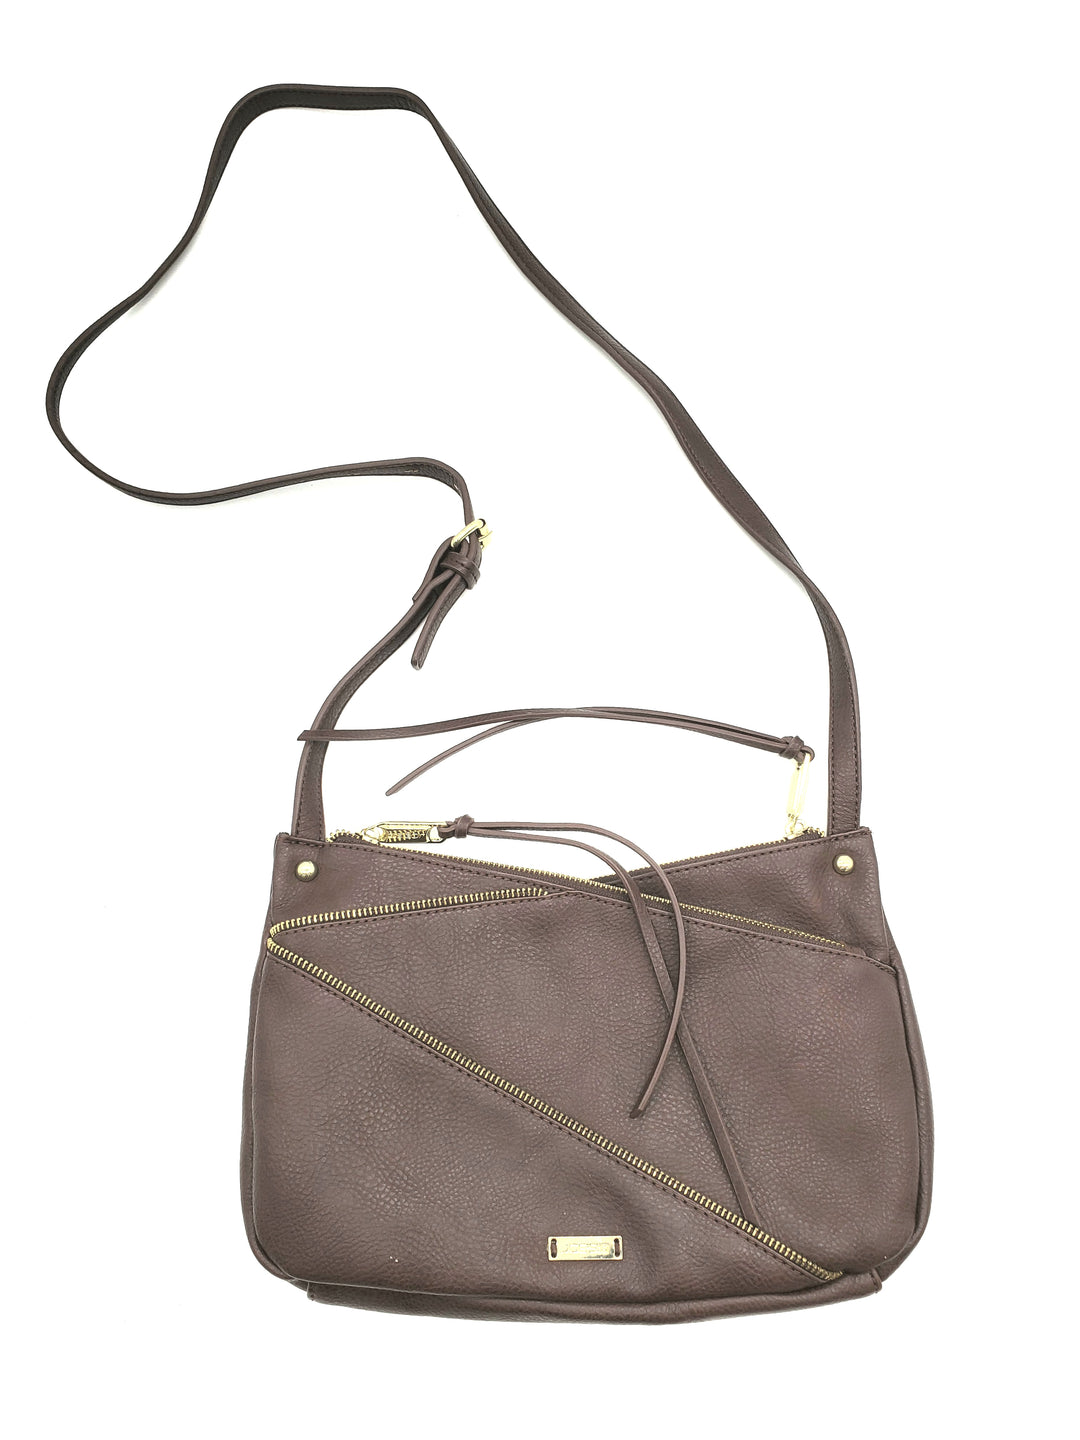 Primary Photo - BRAND: JOES JEANS <BR>STYLE: HANDBAG <BR>COLOR: BROWN <BR>SIZE: SMALL <BR>SKU: 262-26275-67904<BR>AS IS <BR>APPROX 12